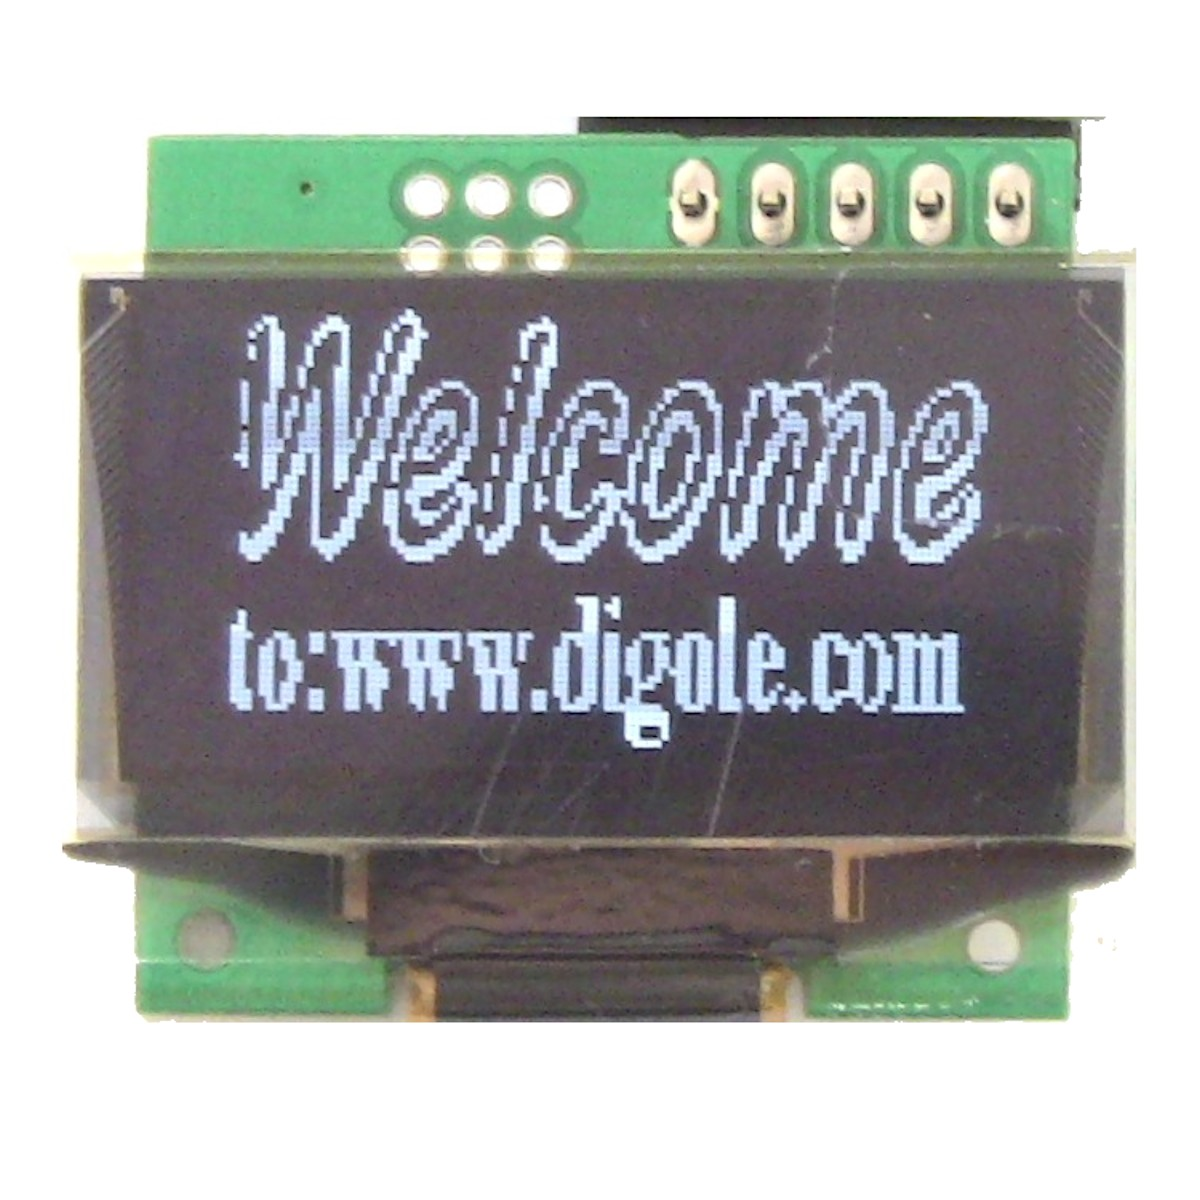 1-3-Serial-UART-I2C-SPI-128x64-OLED-LED-LCD-Display-Module-Weiss-fuer-Arduino